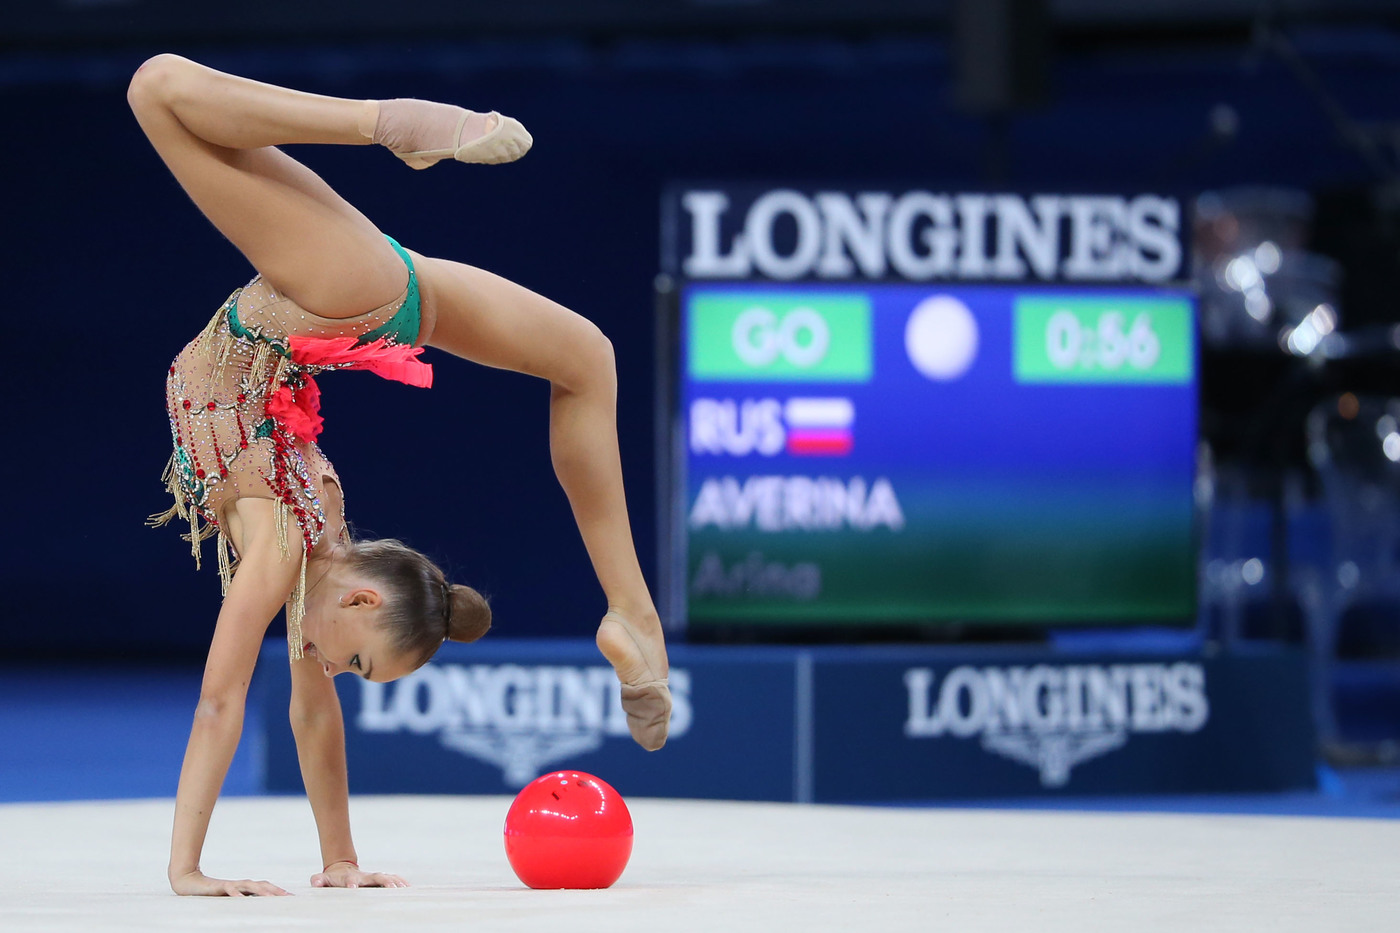 Arina and Dina Averina Longines Ambassador of Elegance 1